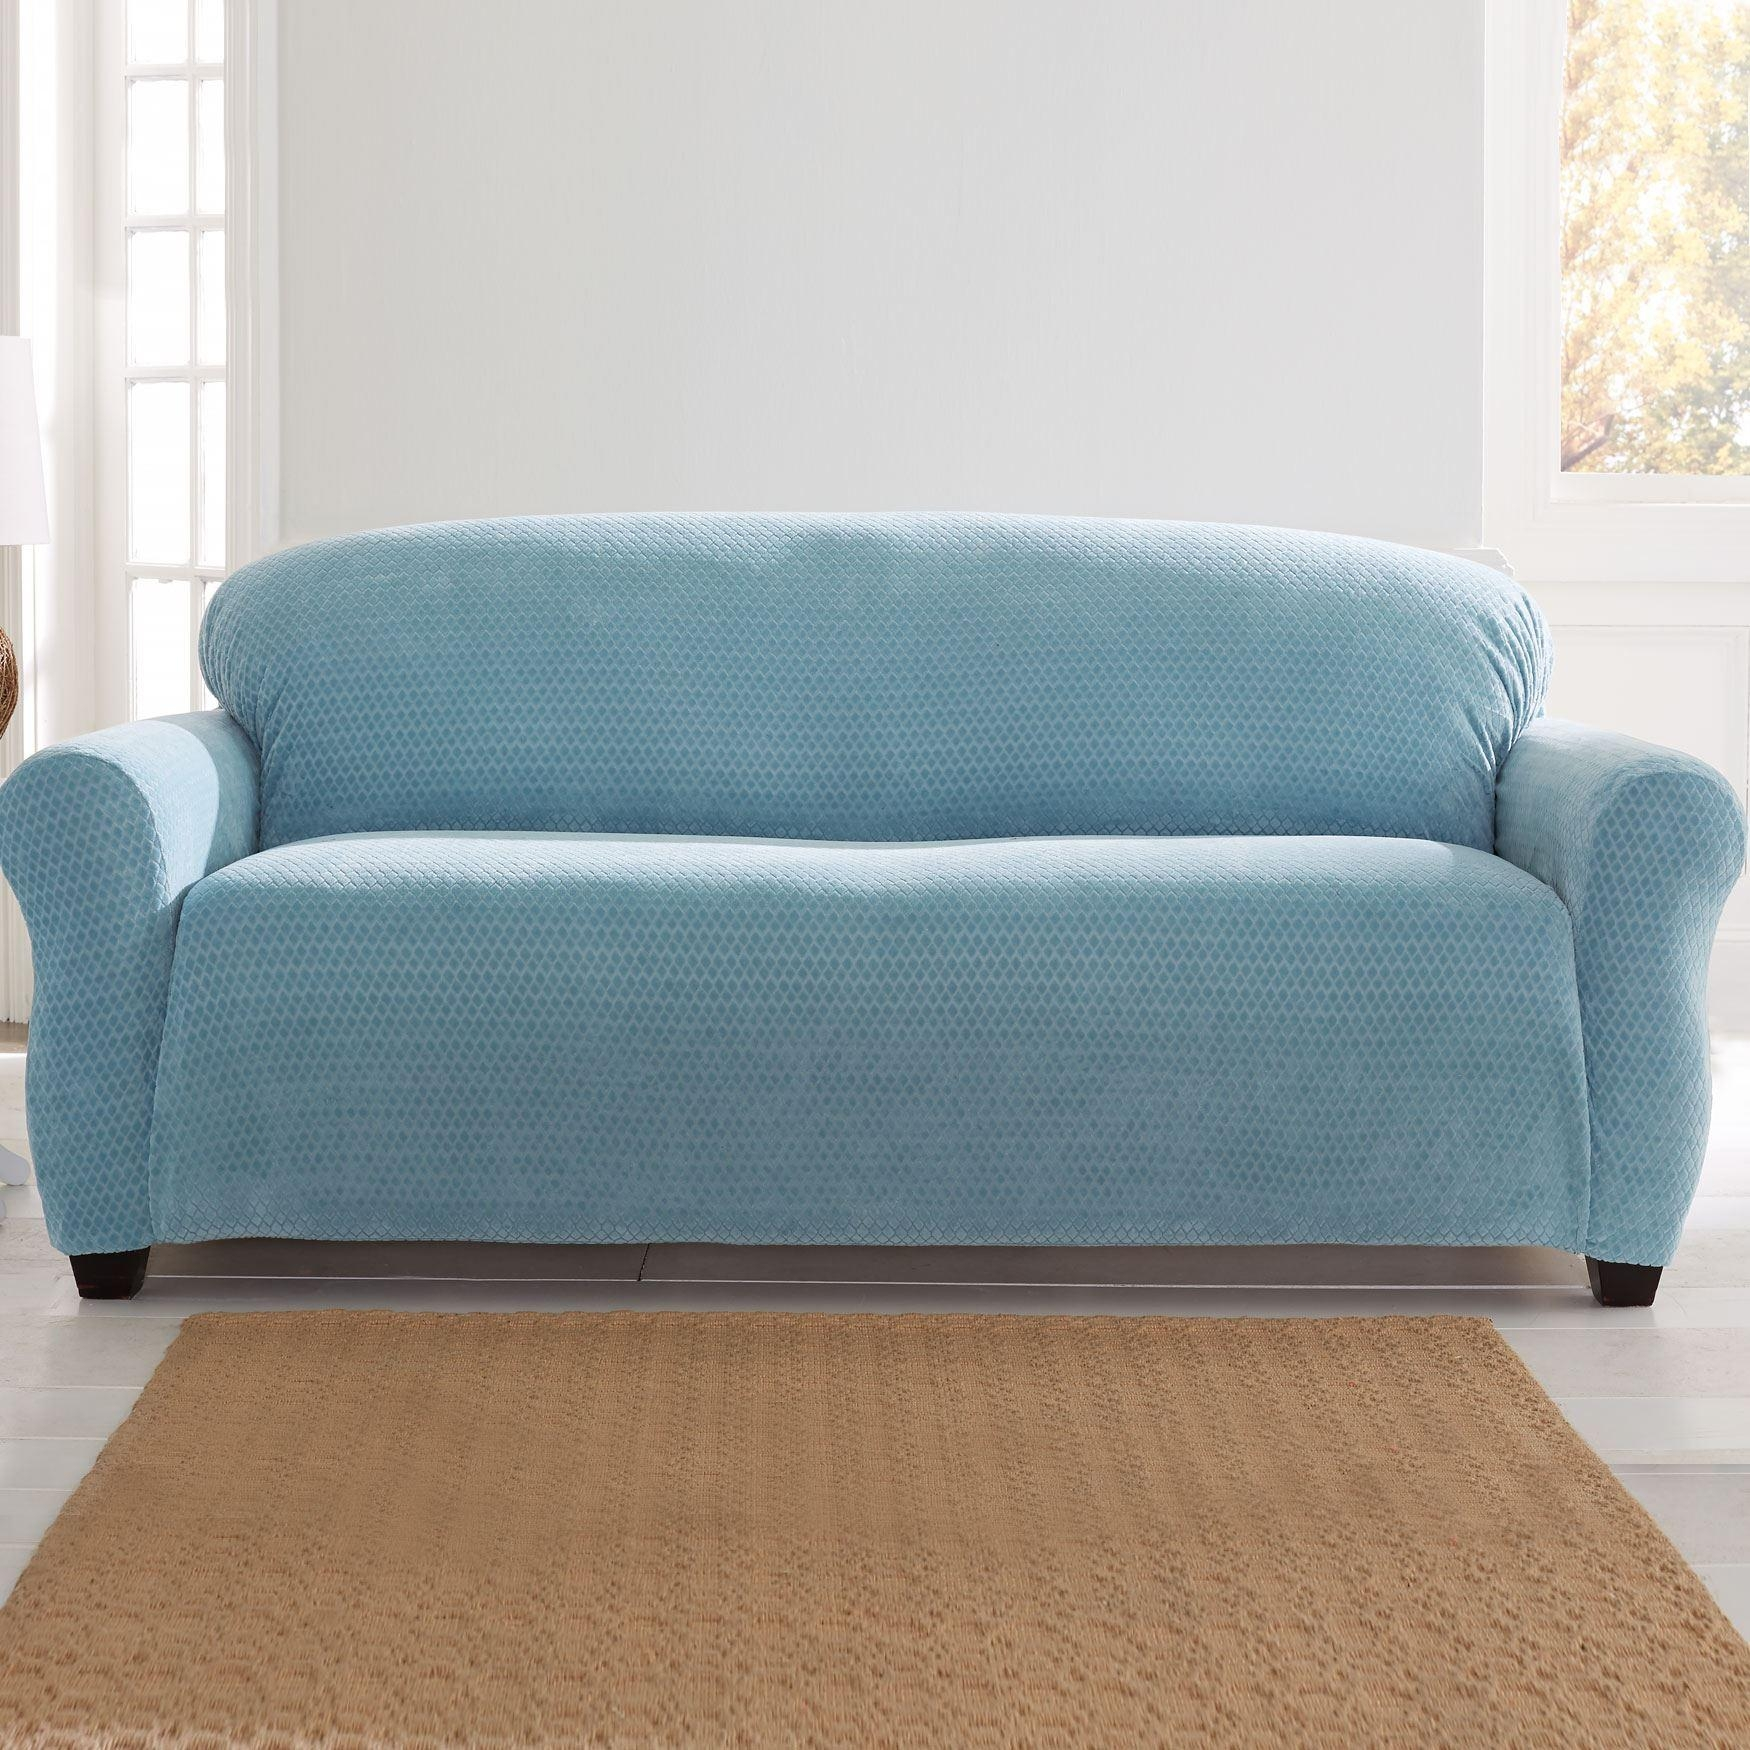 Brylanehome® Studio Stretch Diamond Extra Long Sofa Slipcover With Stretch Slipcover Sofas (Image 1 of 20)